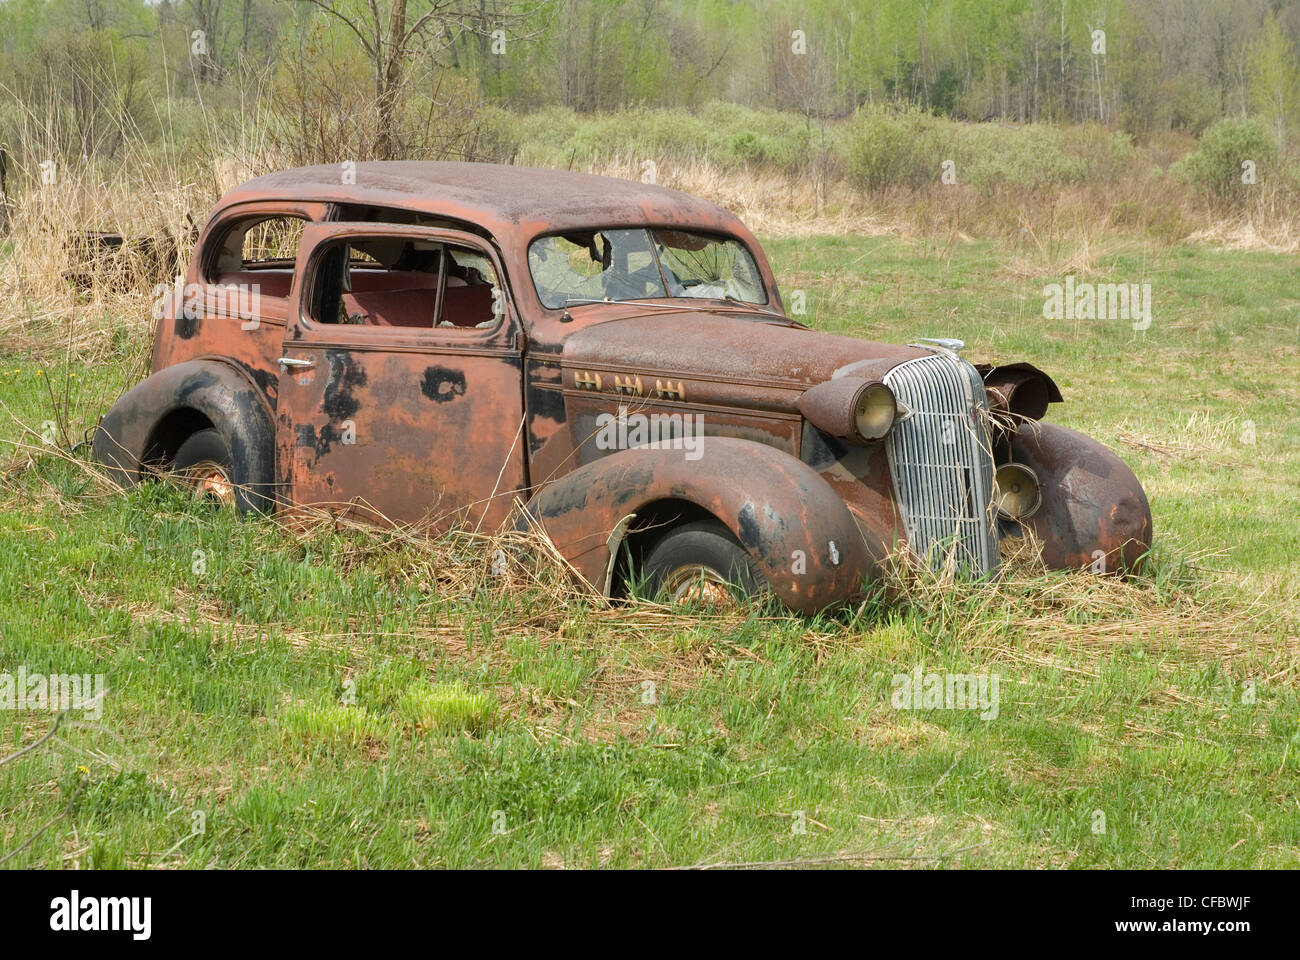 Abandoned Car In Swamp Wallpaper Rusty Old Car Sitting In A Field In Ramara Township